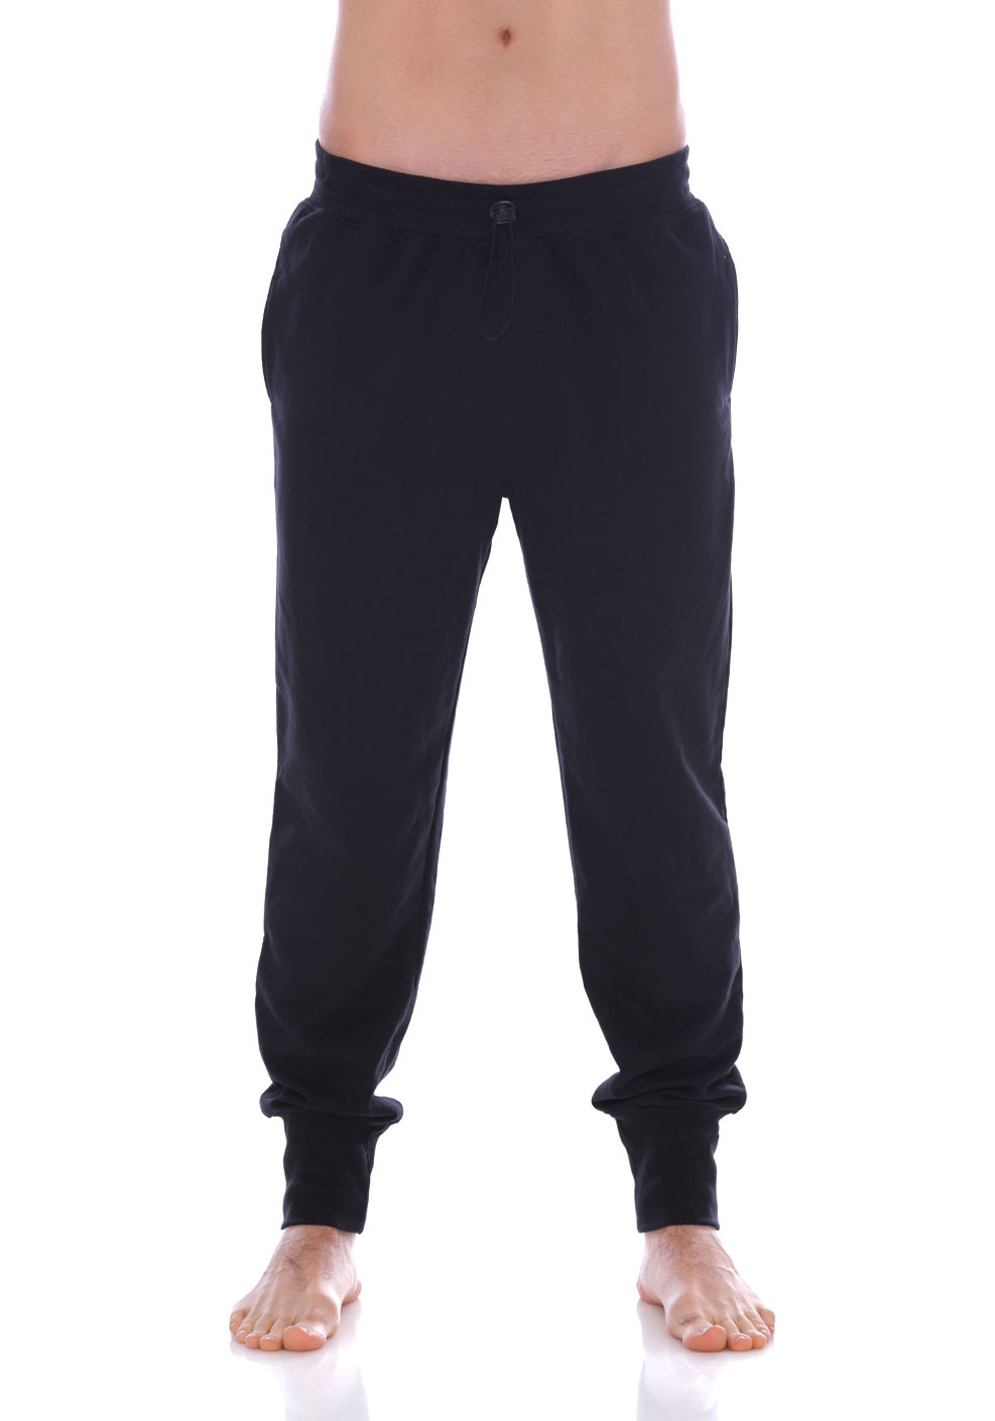 Mundo Unico Comfort Wear Long Jogger | Black